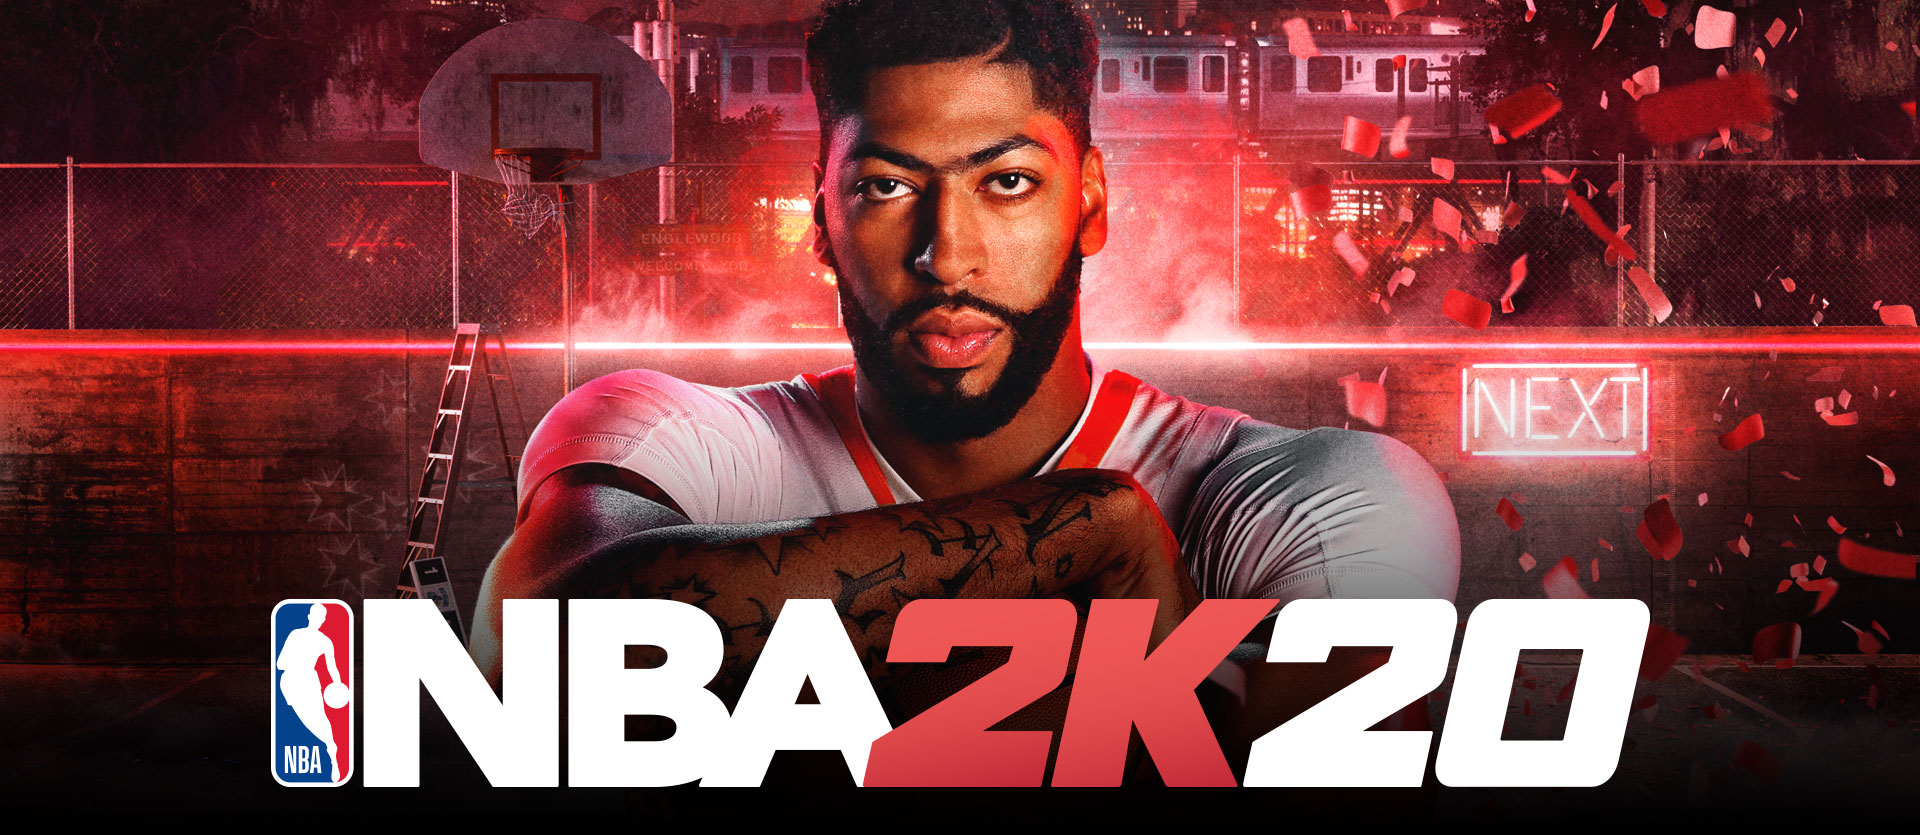 NBA logo, NBA 2K20 logo, front view of Anthony Davis in front of a red hued background with a basketball hoop, light-up Next sign and confetti